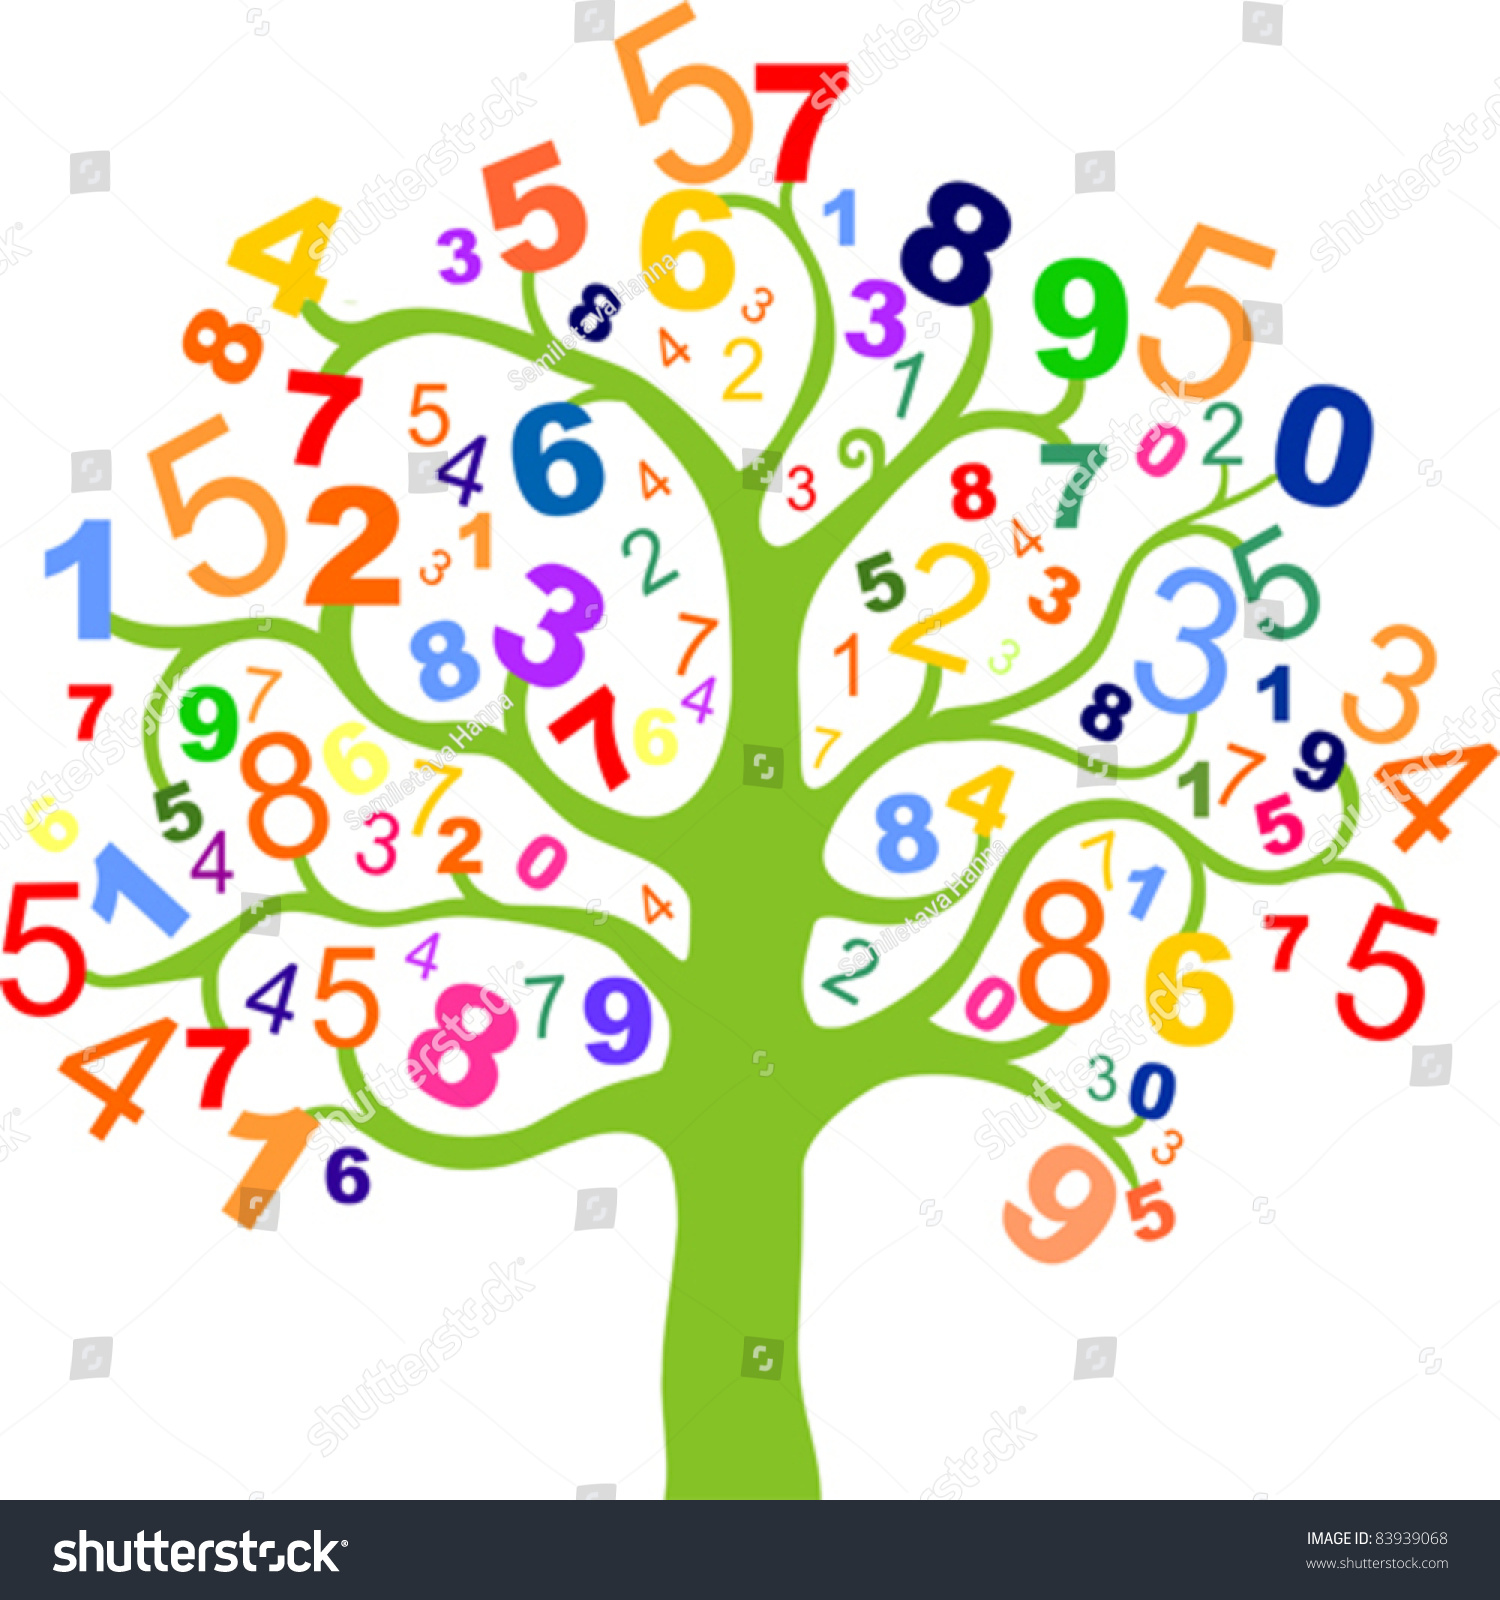 Abstract Colorful Tree Numbers Isolated On Stock Photo (Photo ...